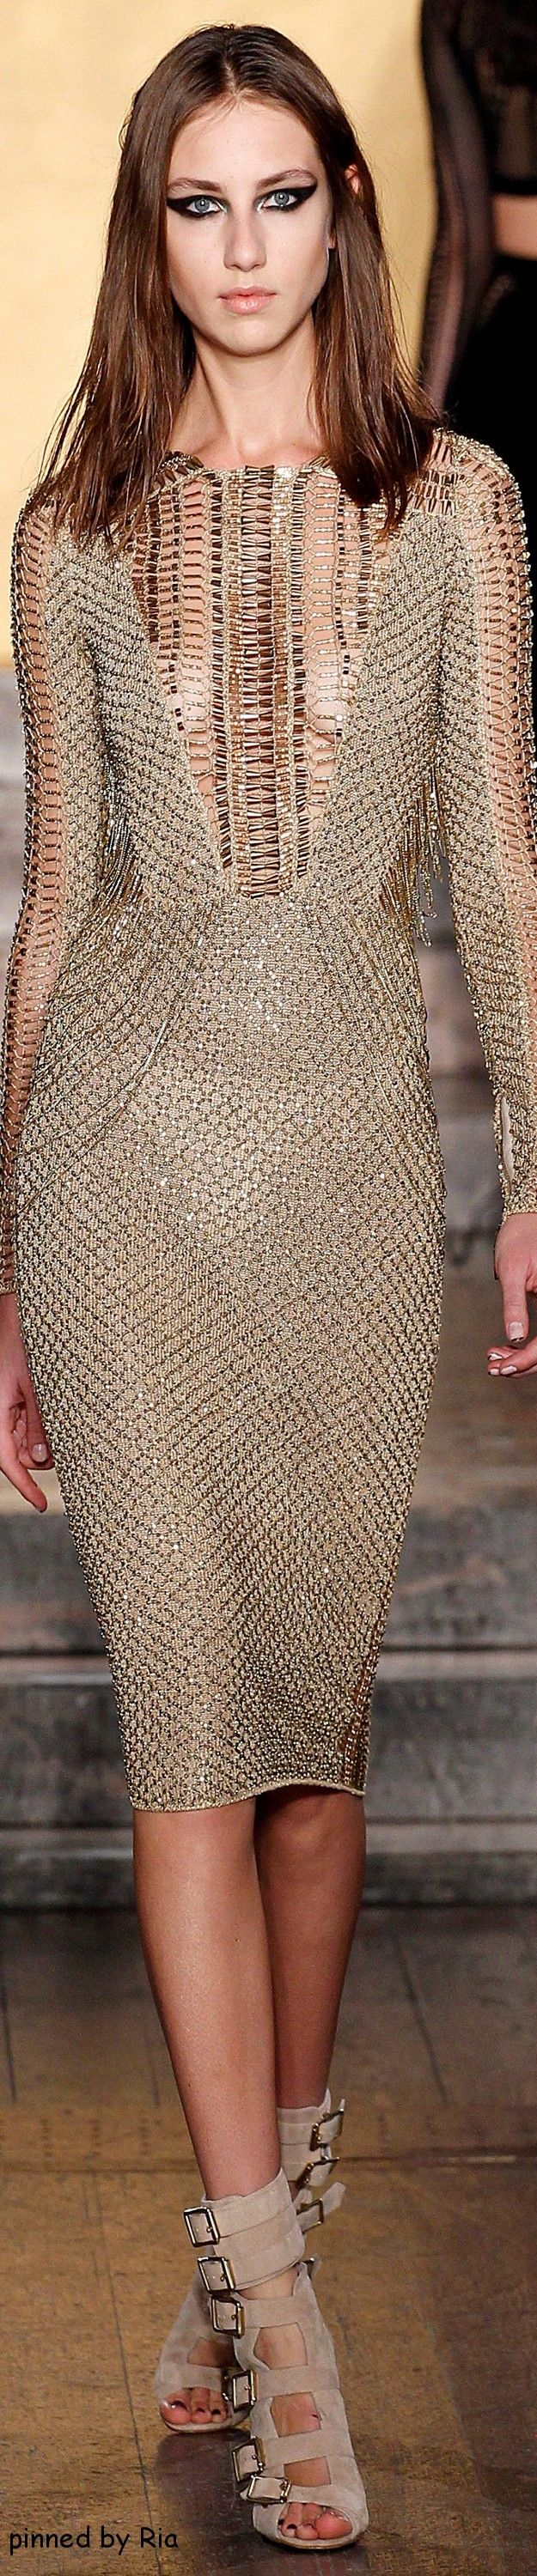 Julien Macdonald Fall 2016 RTW l Ria